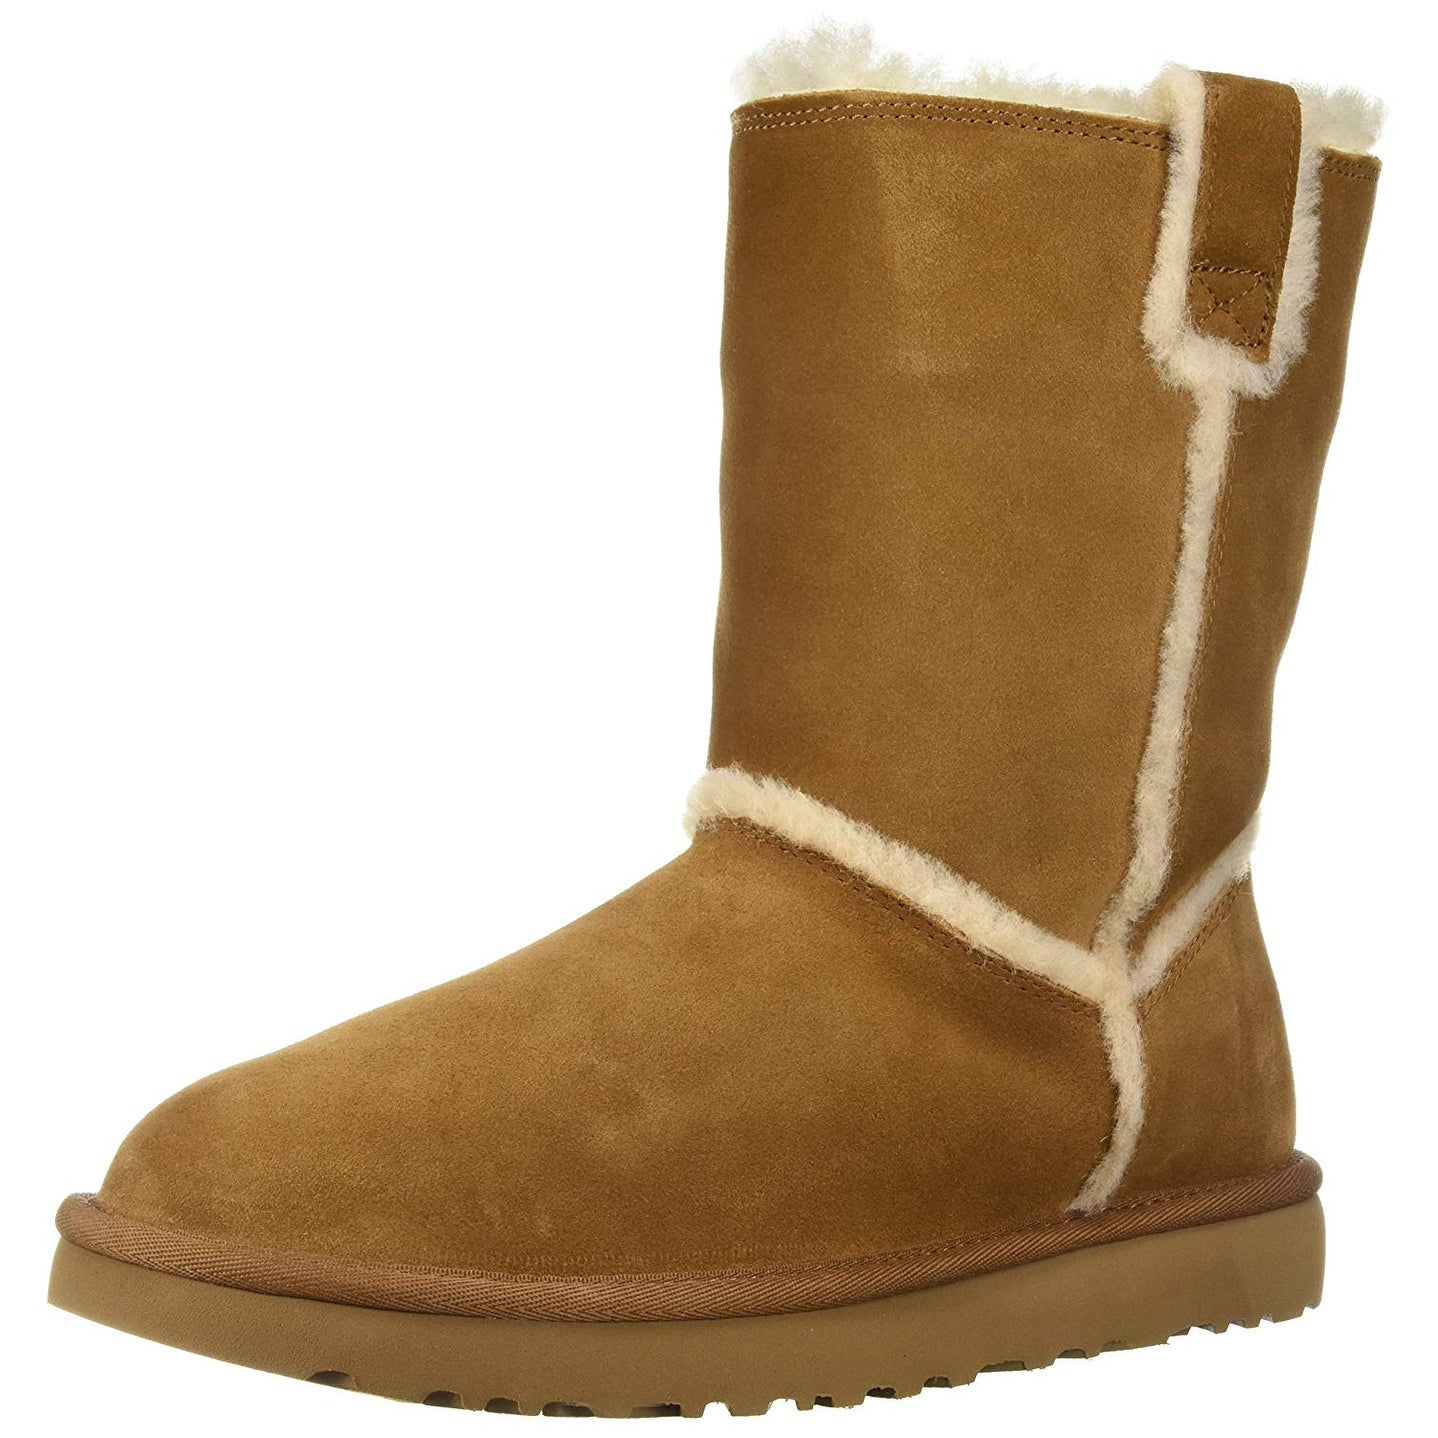 f9e88b90e96 Buy Brown UGG Women's Boots Online at Overstock   Our Best Women's ...